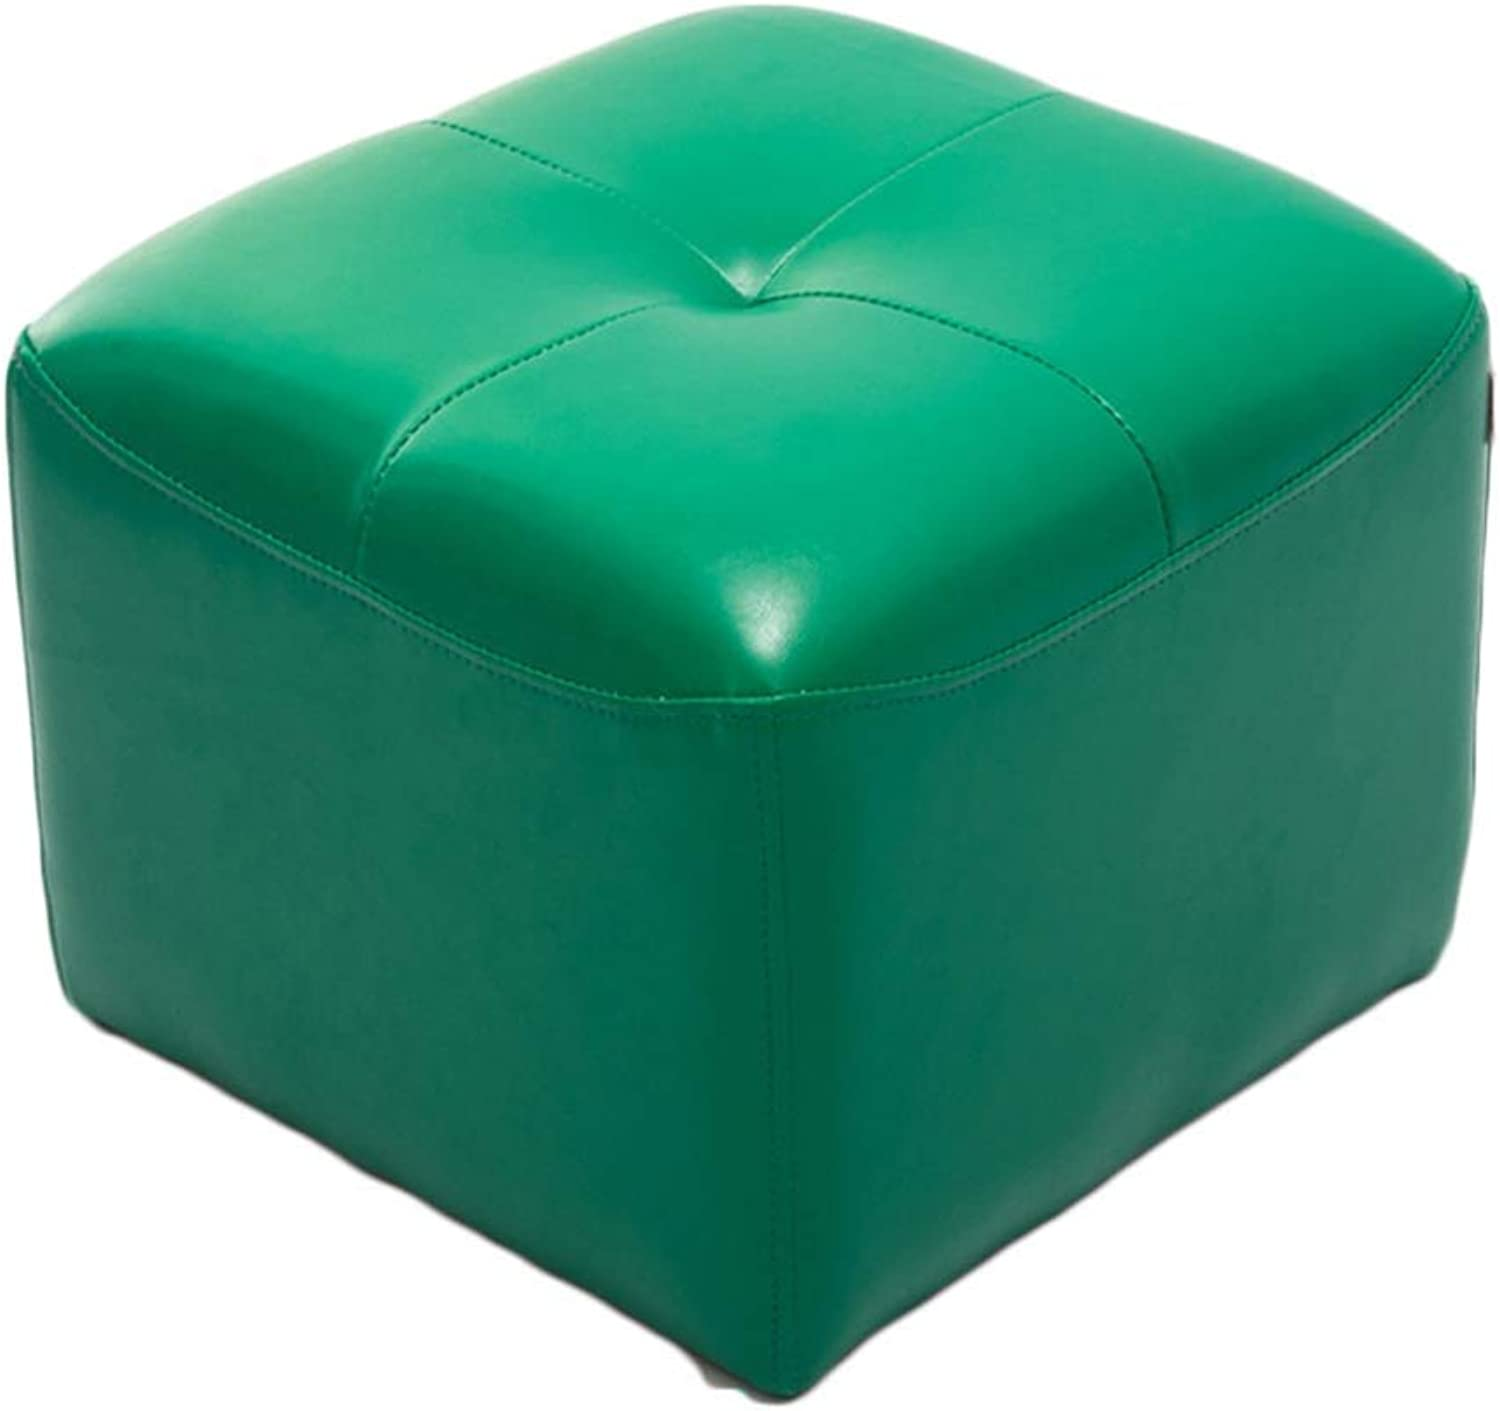 RMJAI Small seat Household Fashion PU Footstools shoes Stool Square Sofa Stool(16.5x16.5x13.3 Inches) (color   Green)